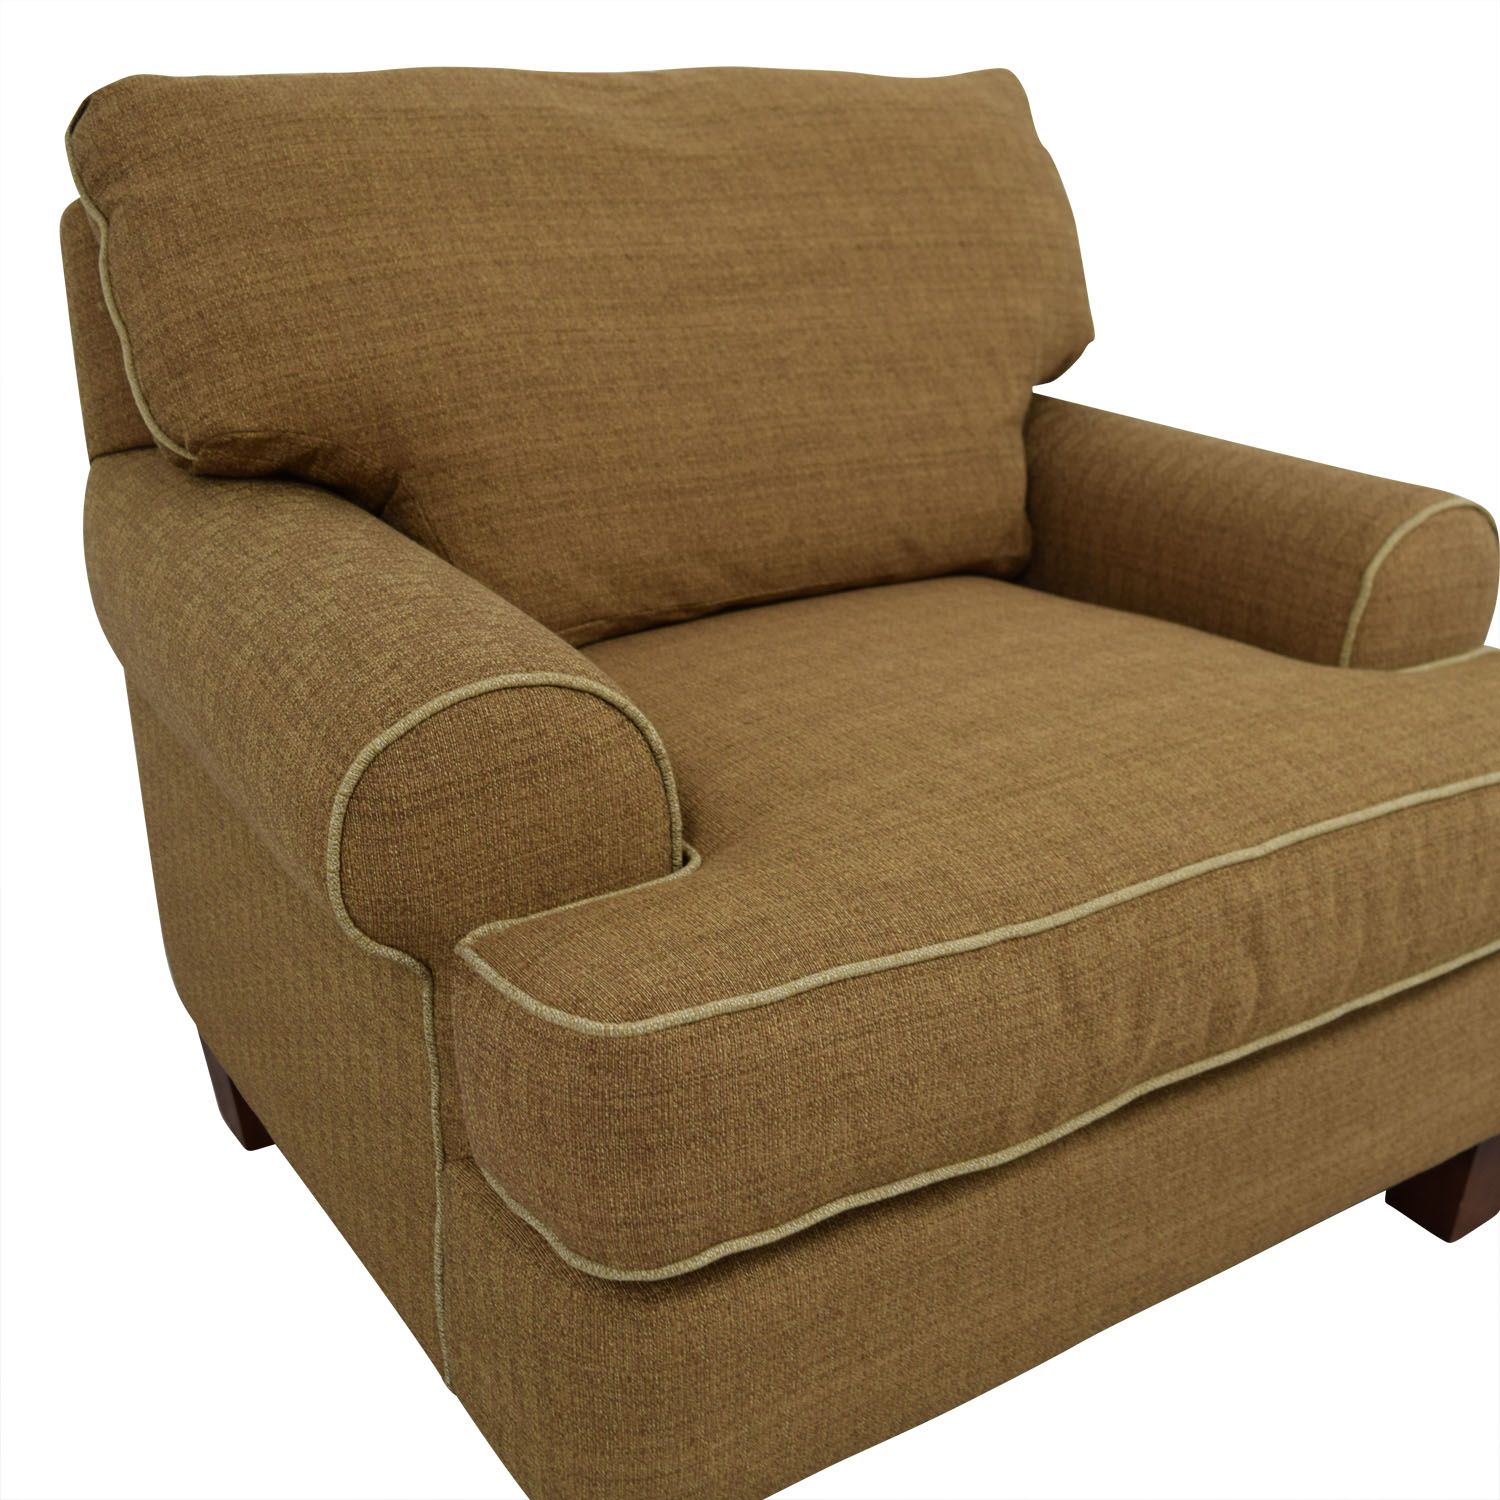 Braxton Culler Braxton Culler Brown Upholstered Chair second hand